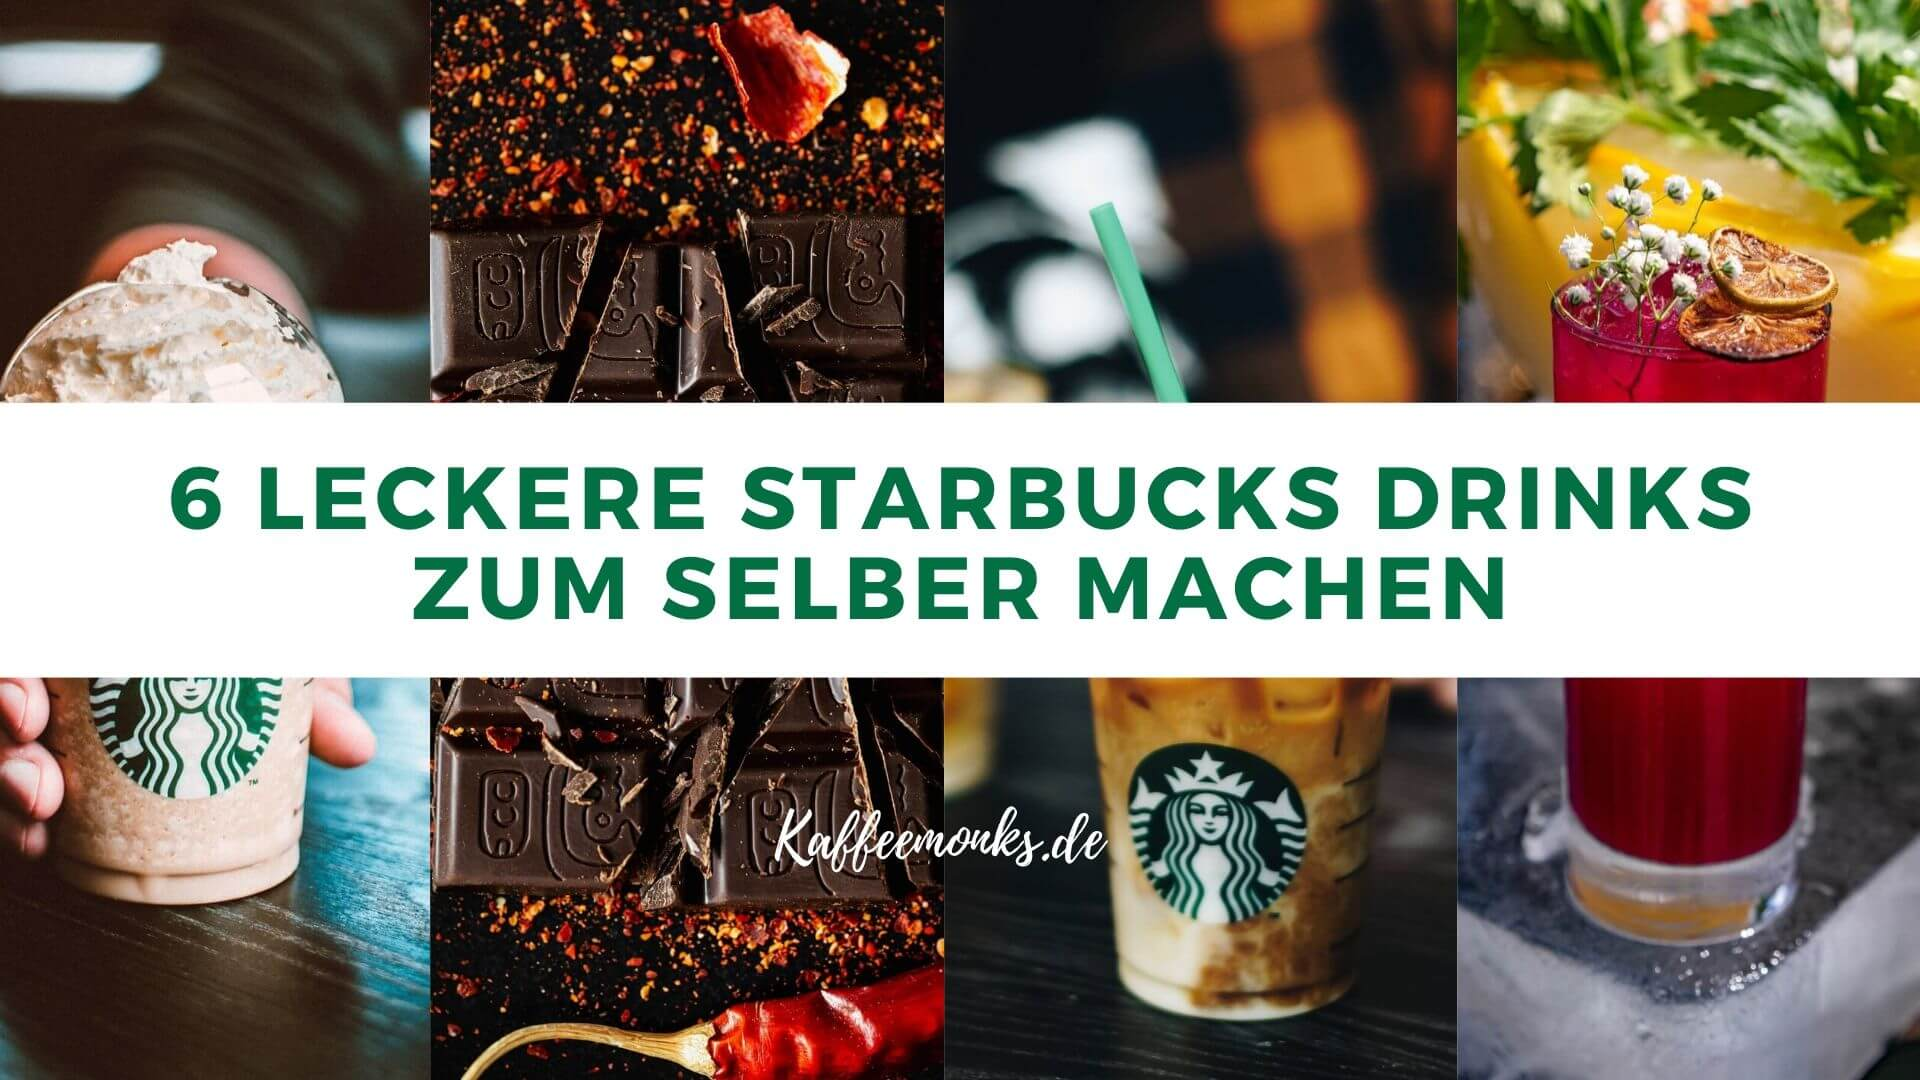 You are currently viewing DIY STARBUCKS GETRÄNKE SELBER MACHEN